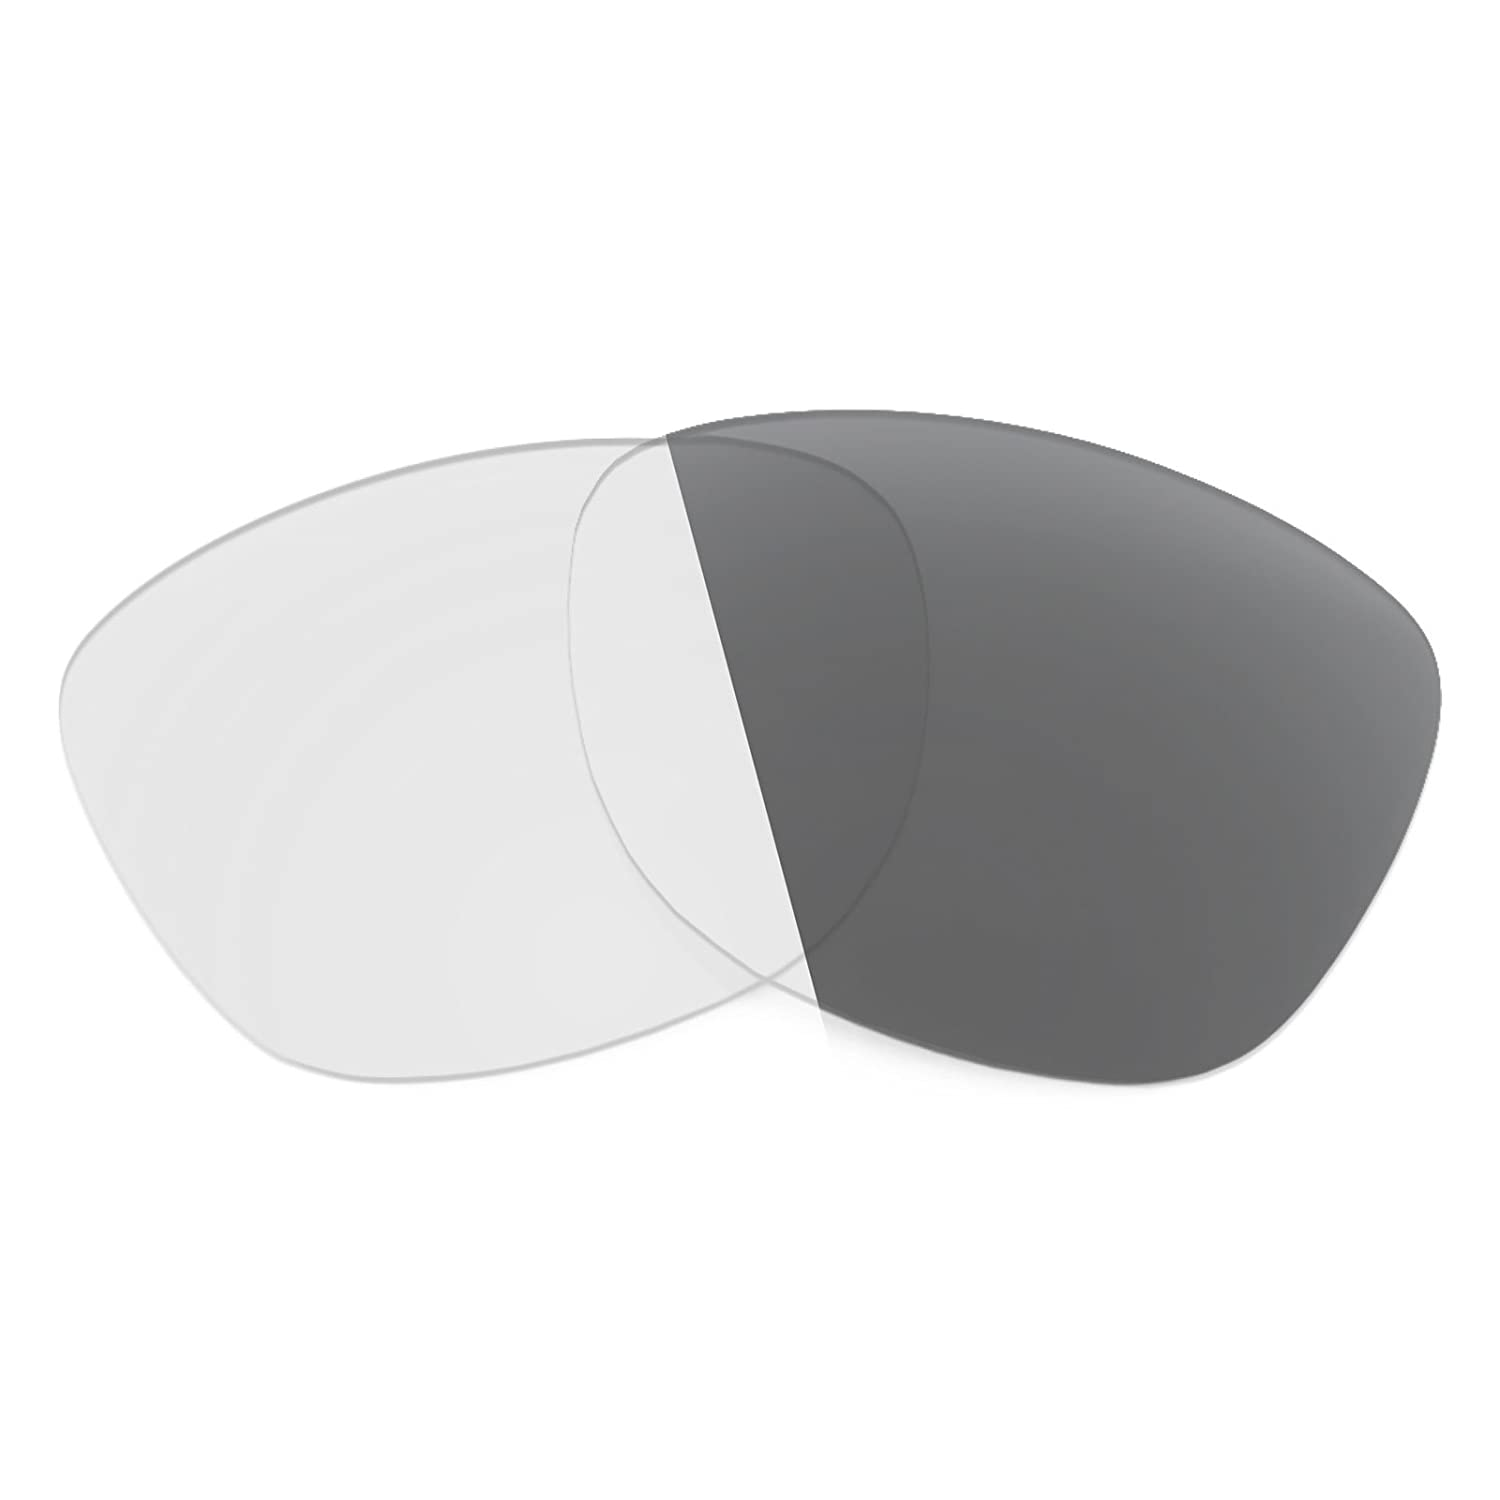 3e0944f4e8 Revant Replacement Lenses for Oakley Mainlink Elite Adapt Grey  Photochromic  Amazon.co.uk  Clothing